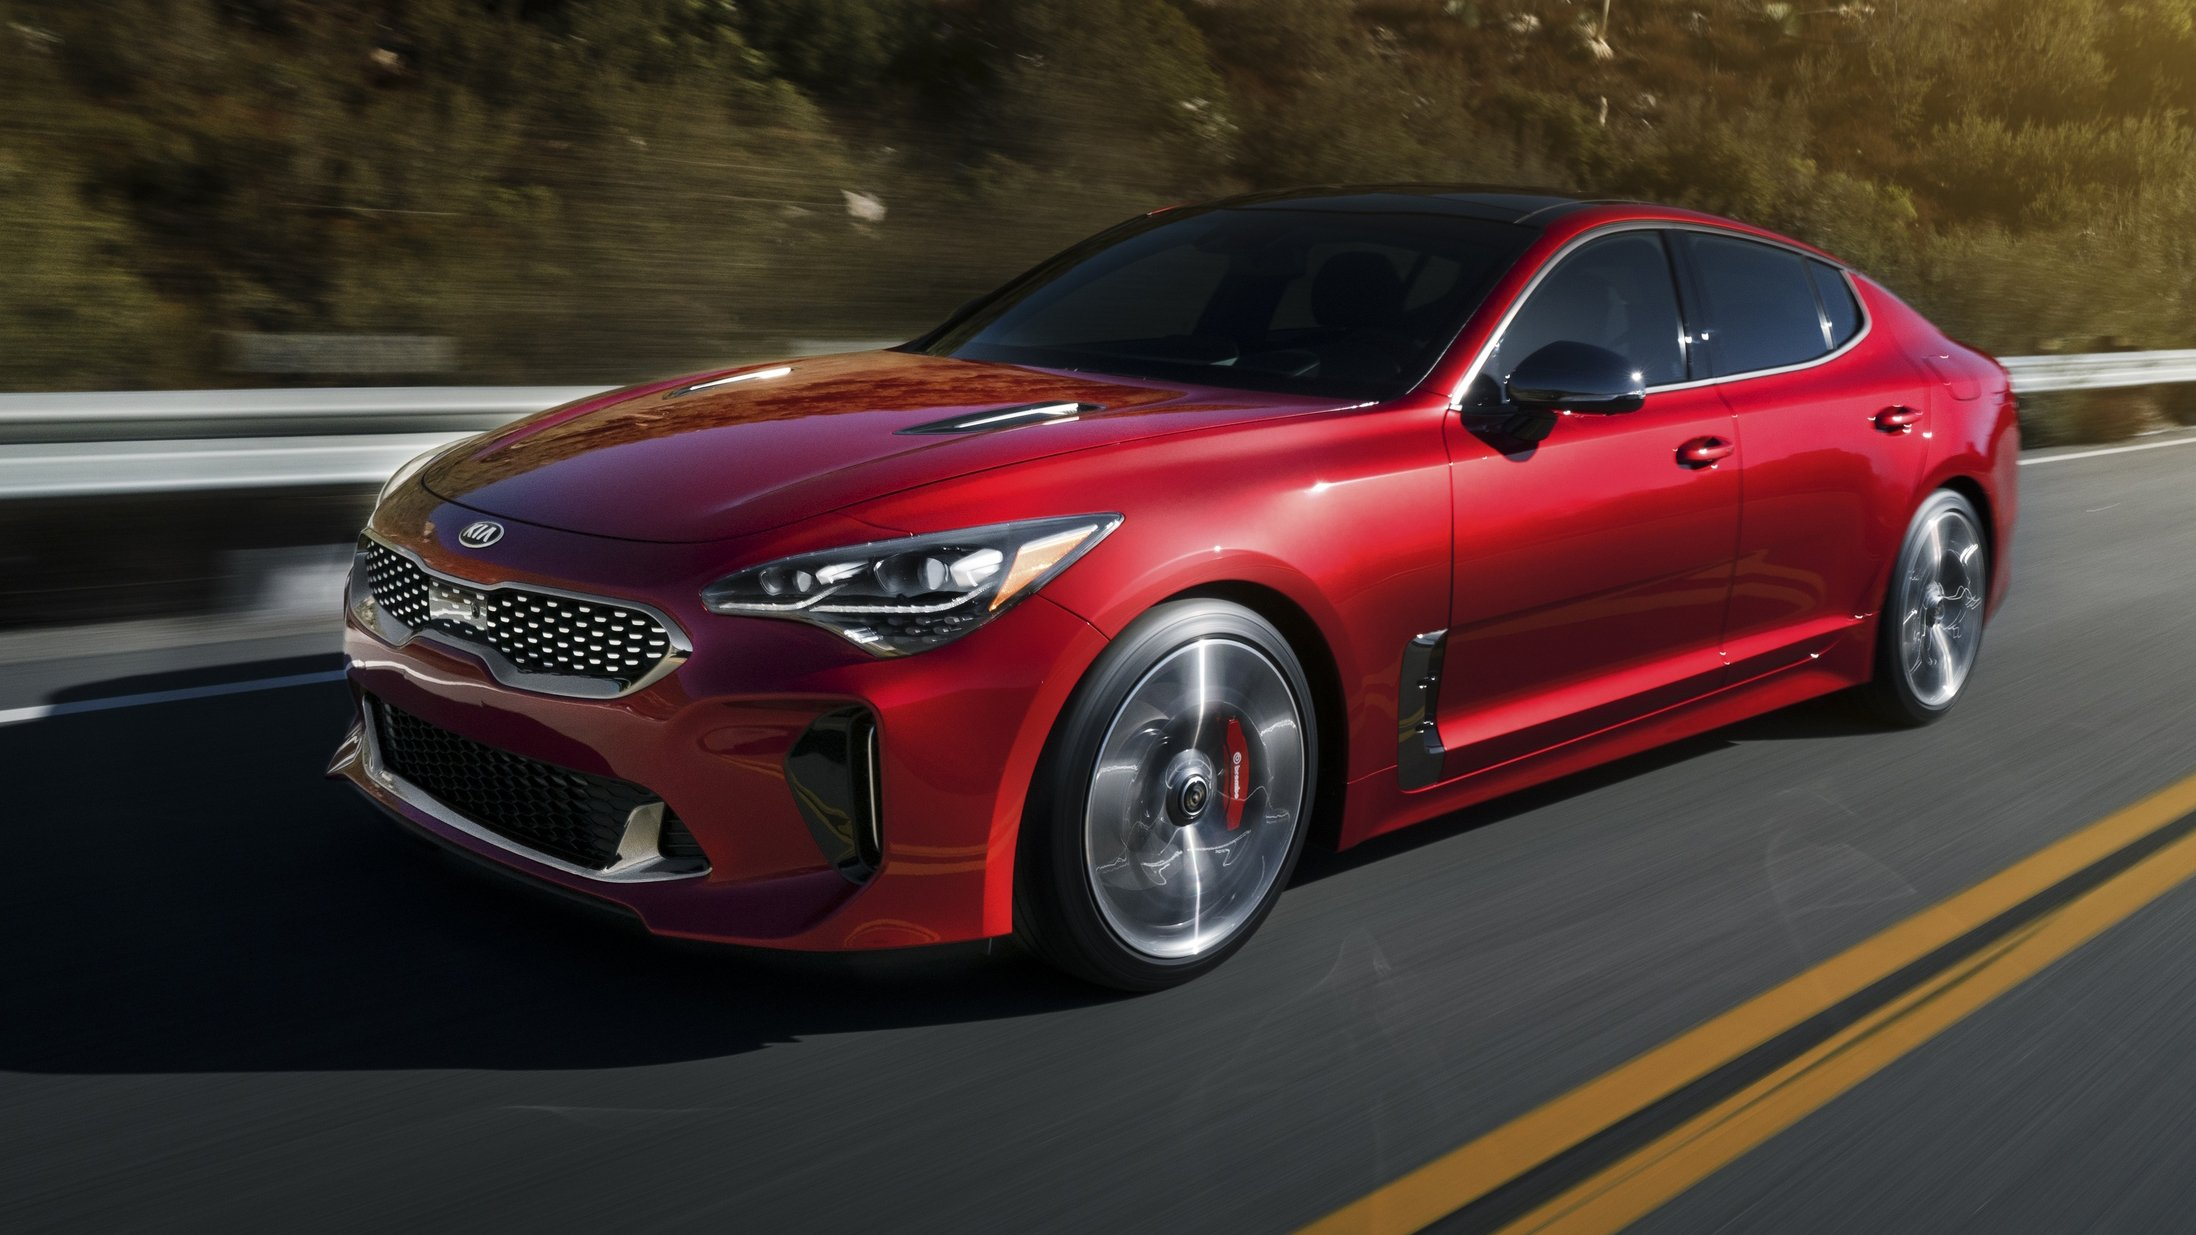 2018 kia stinger revealed detroit debut for 272kw rear drive korean liftback update photos. Black Bedroom Furniture Sets. Home Design Ideas